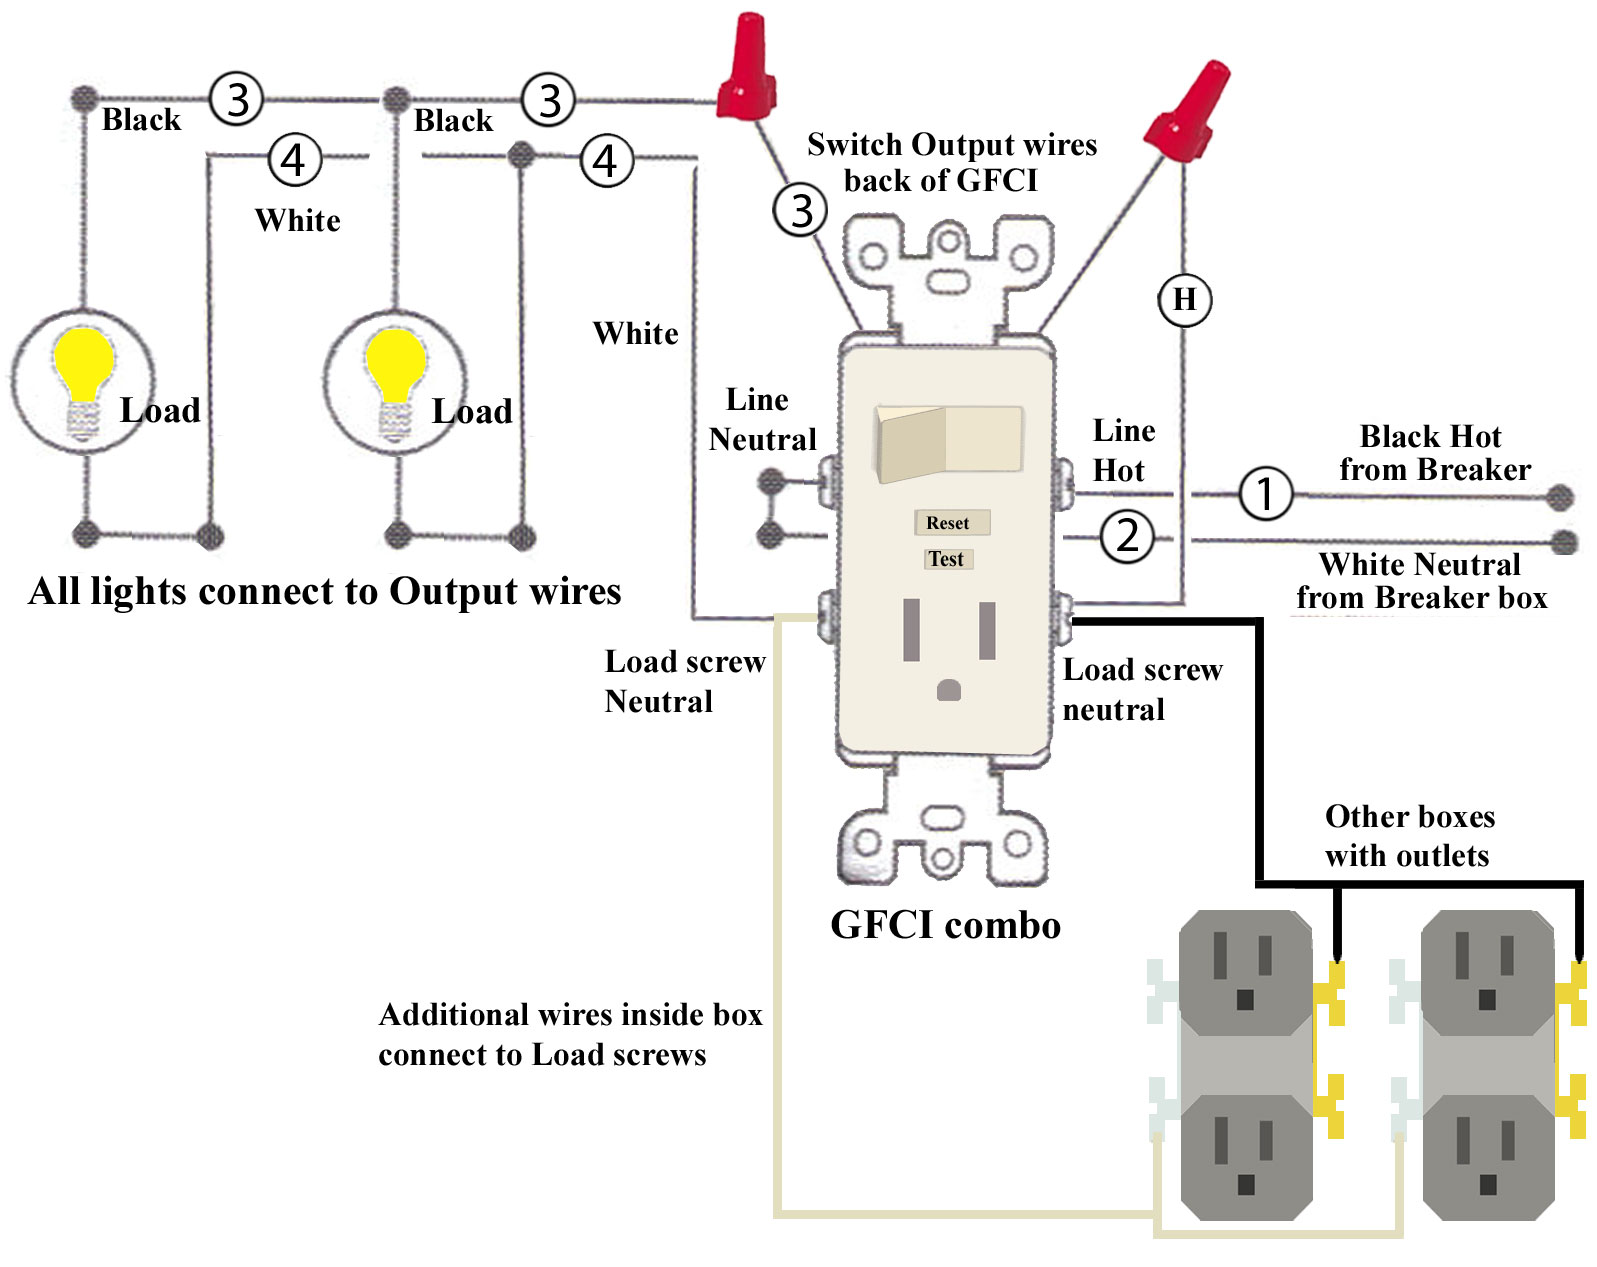 GFCI combo wiring3 update how to install and troubleshoot gfci leviton gfci receptacle wiring diagram at creativeand.co